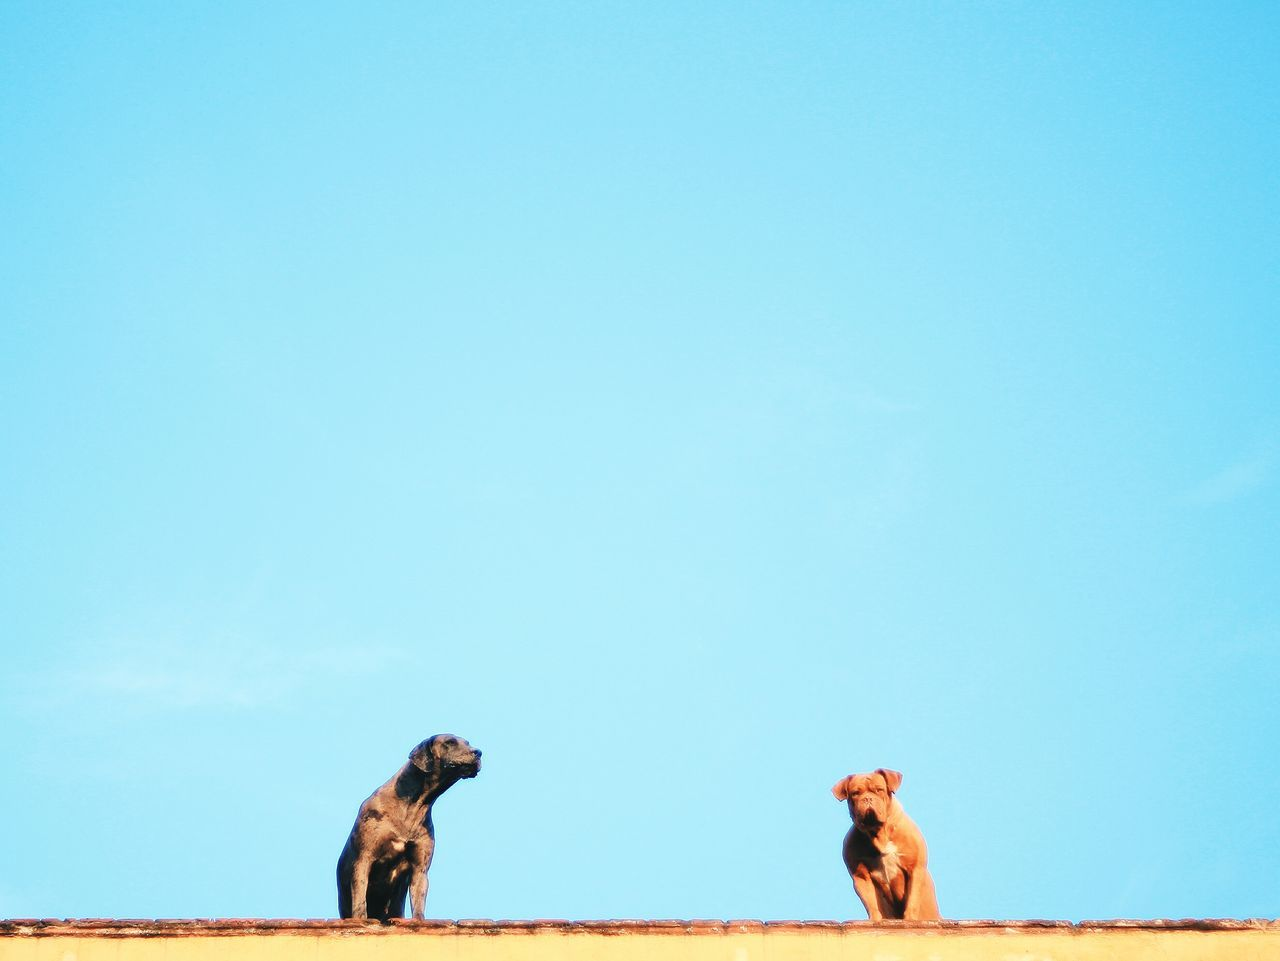 Low angle view of dogs sitting on wall against clear blue sky